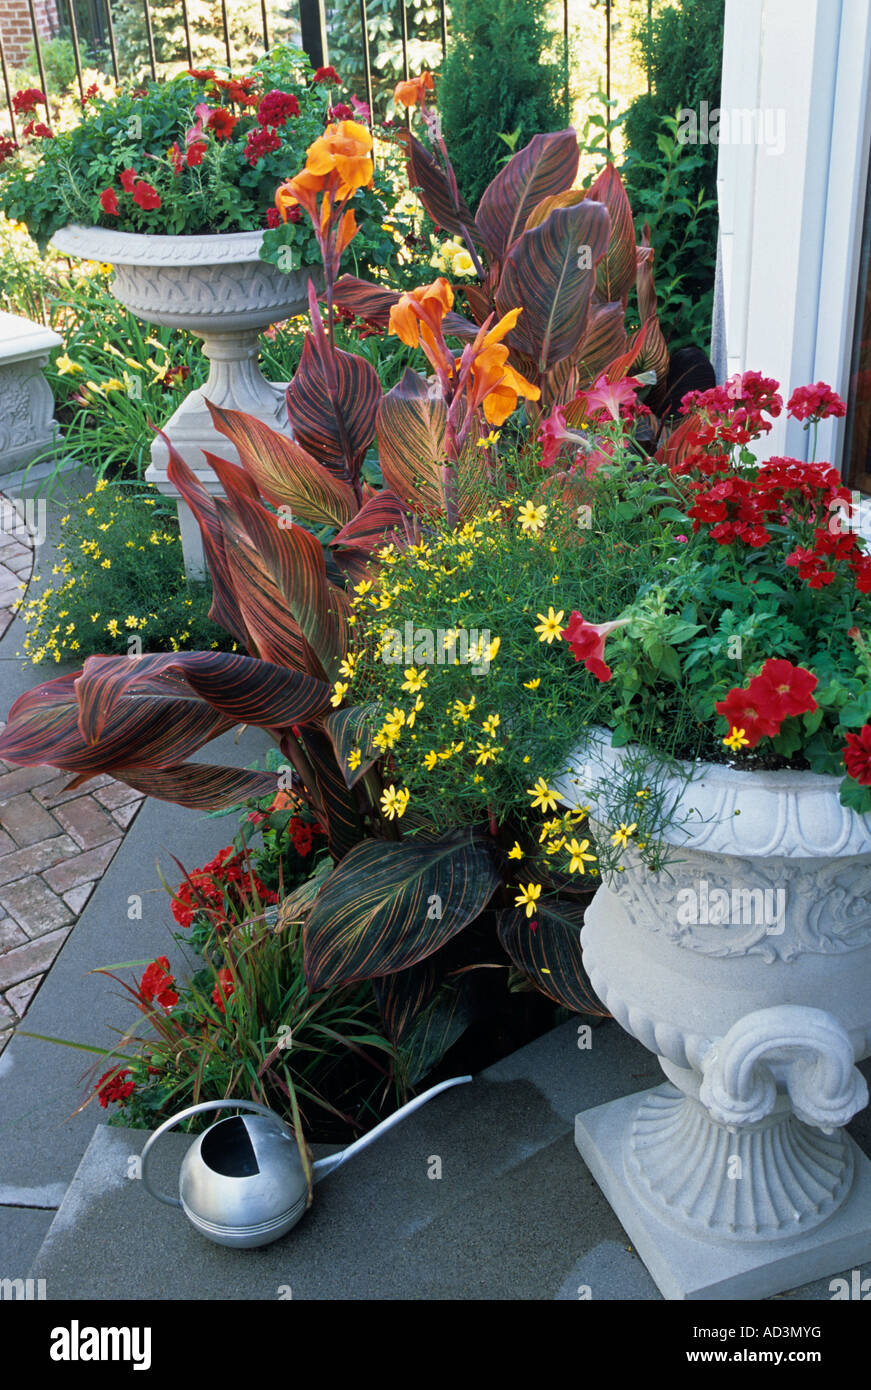 MINNESOTA TOWNHOME PATIO GARDEN WITH STONE PLINTHS AND URNS, TROPICANNA  CANNAS, MOONBEAM COREOPSIS. JULY